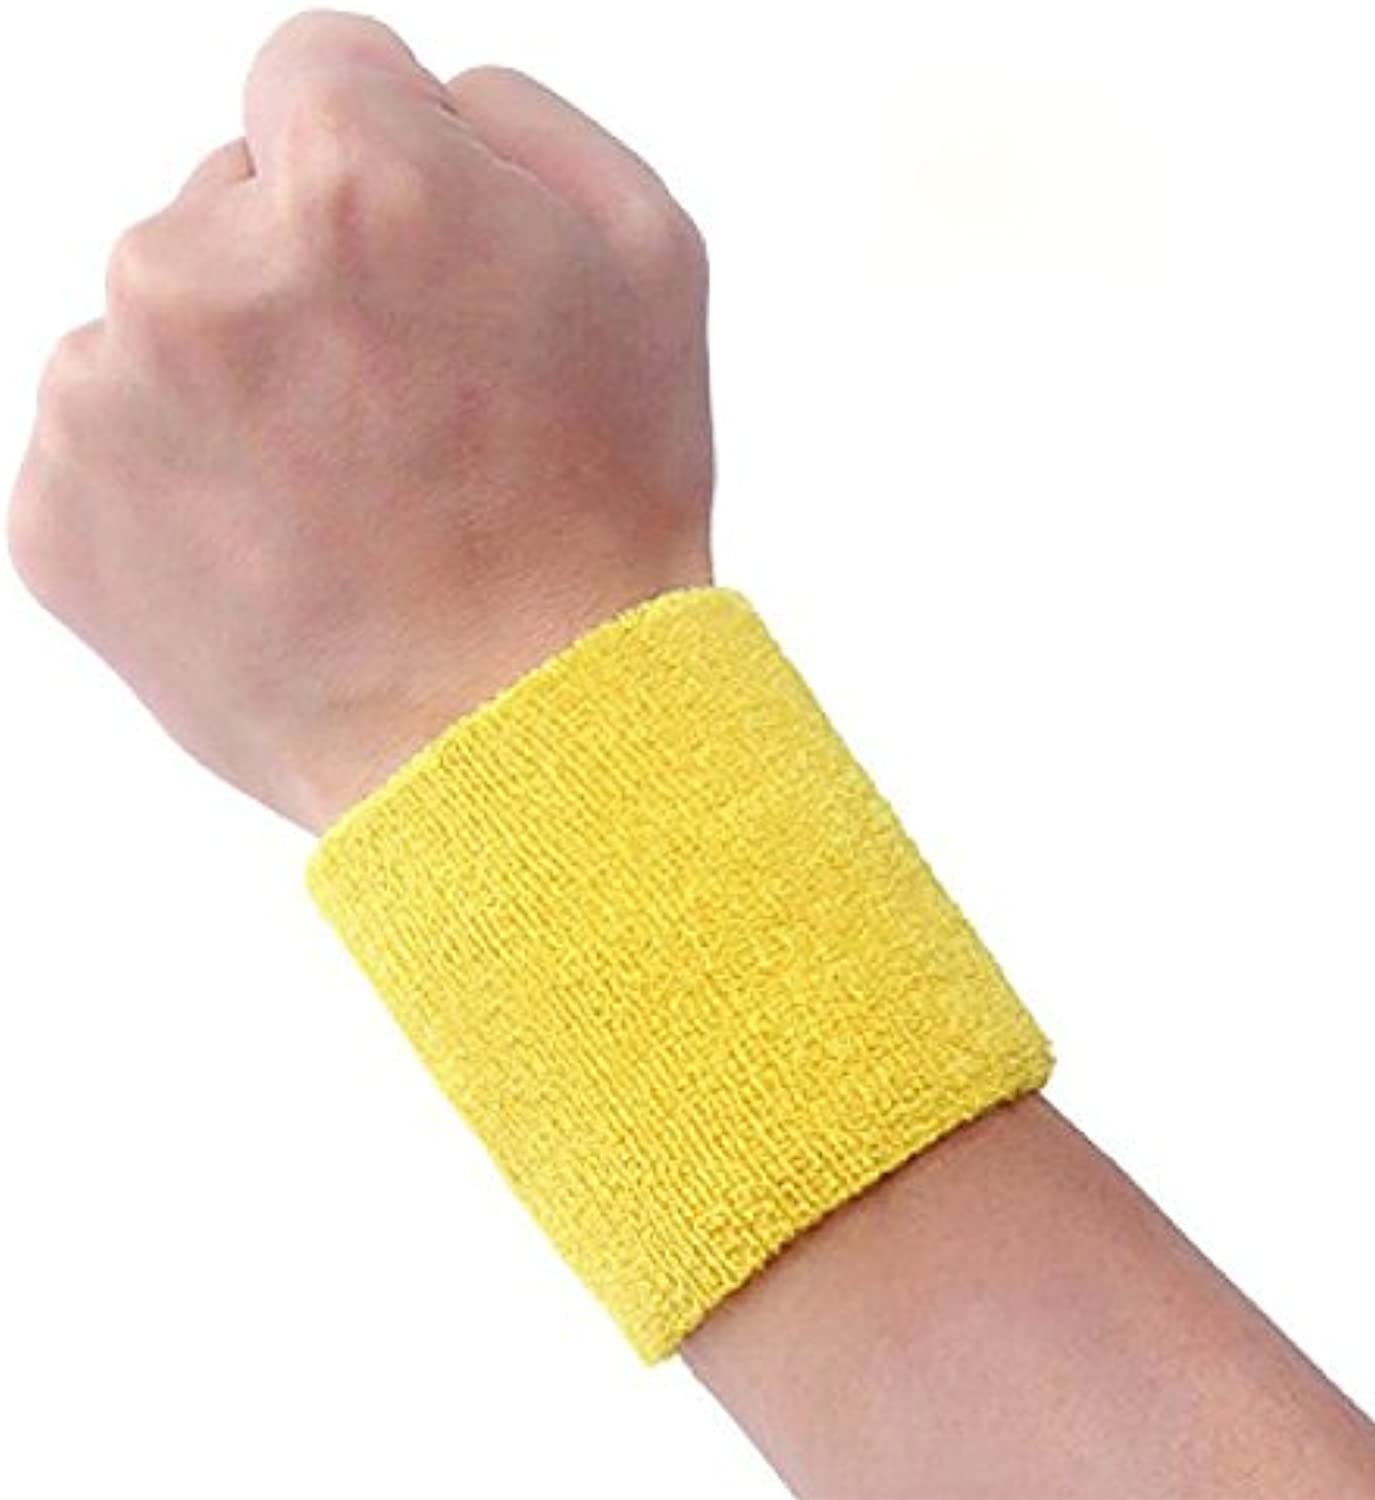 Lecimo Sweat Wrist Band Sports Gym Sweatband Fitness Toalla Vestido De Lujo Ejecutar,1#  -